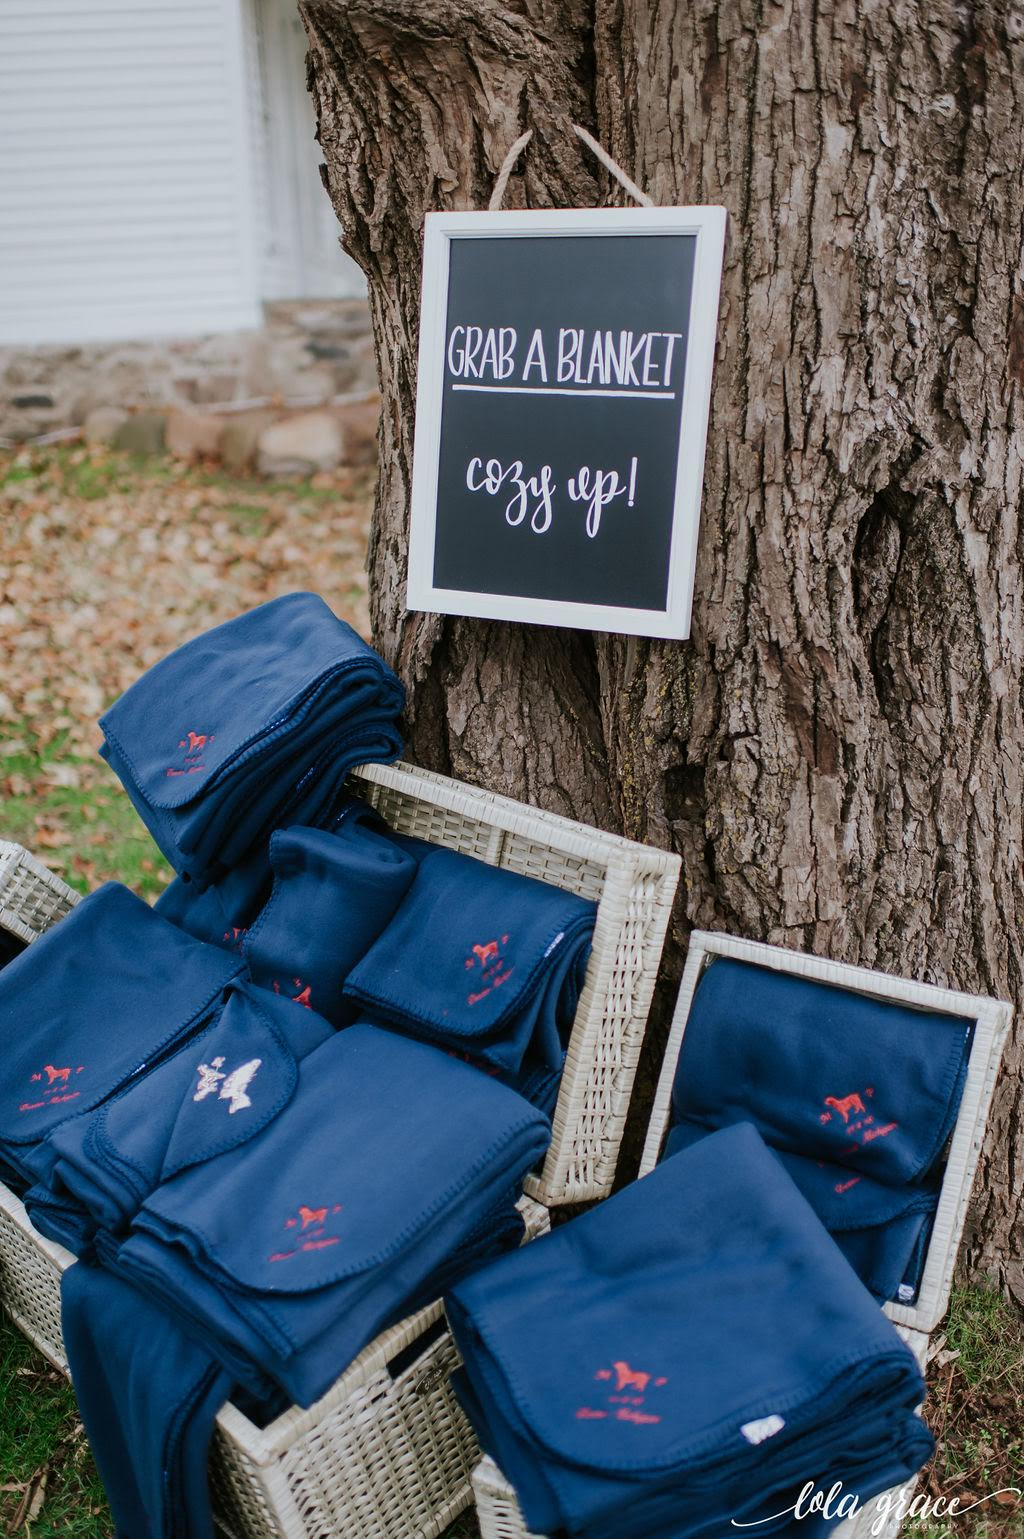 Guests snuggled up in custom monogrammed blankets for their breezy outdoor ceremony.